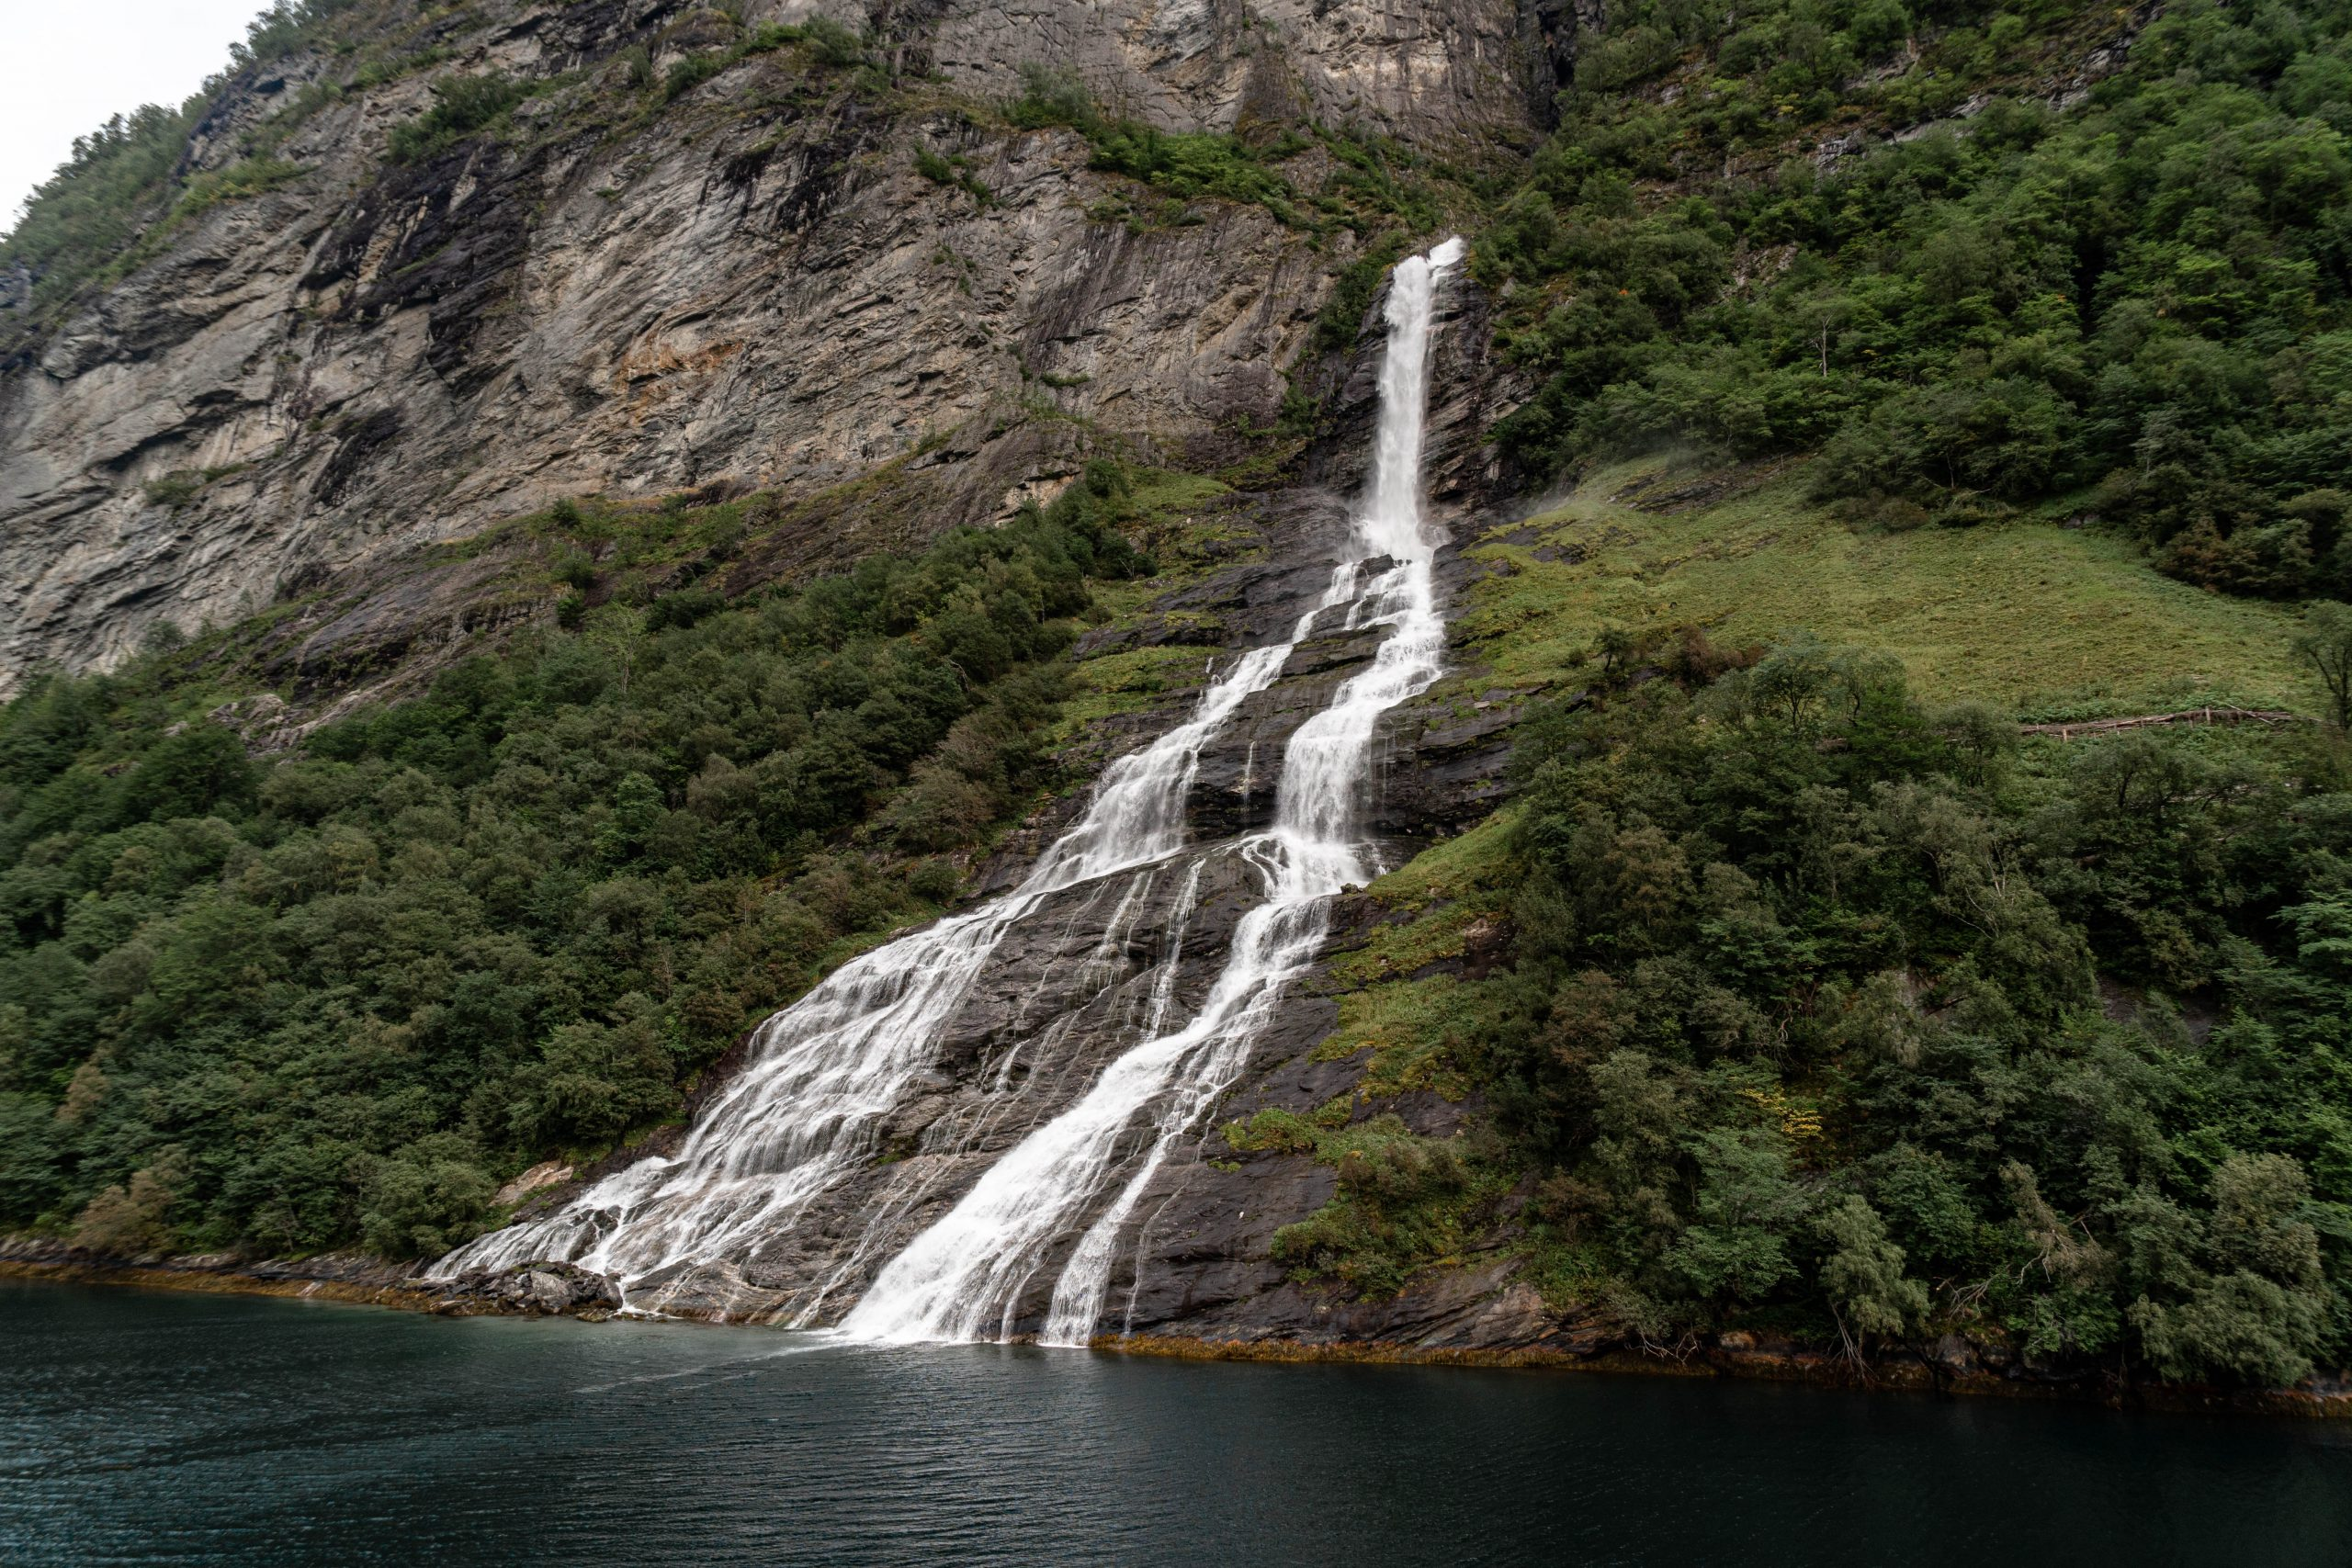 The Suitor, waterfall in Geirangerfjord - a highlight of this 1 week Norway itinerary